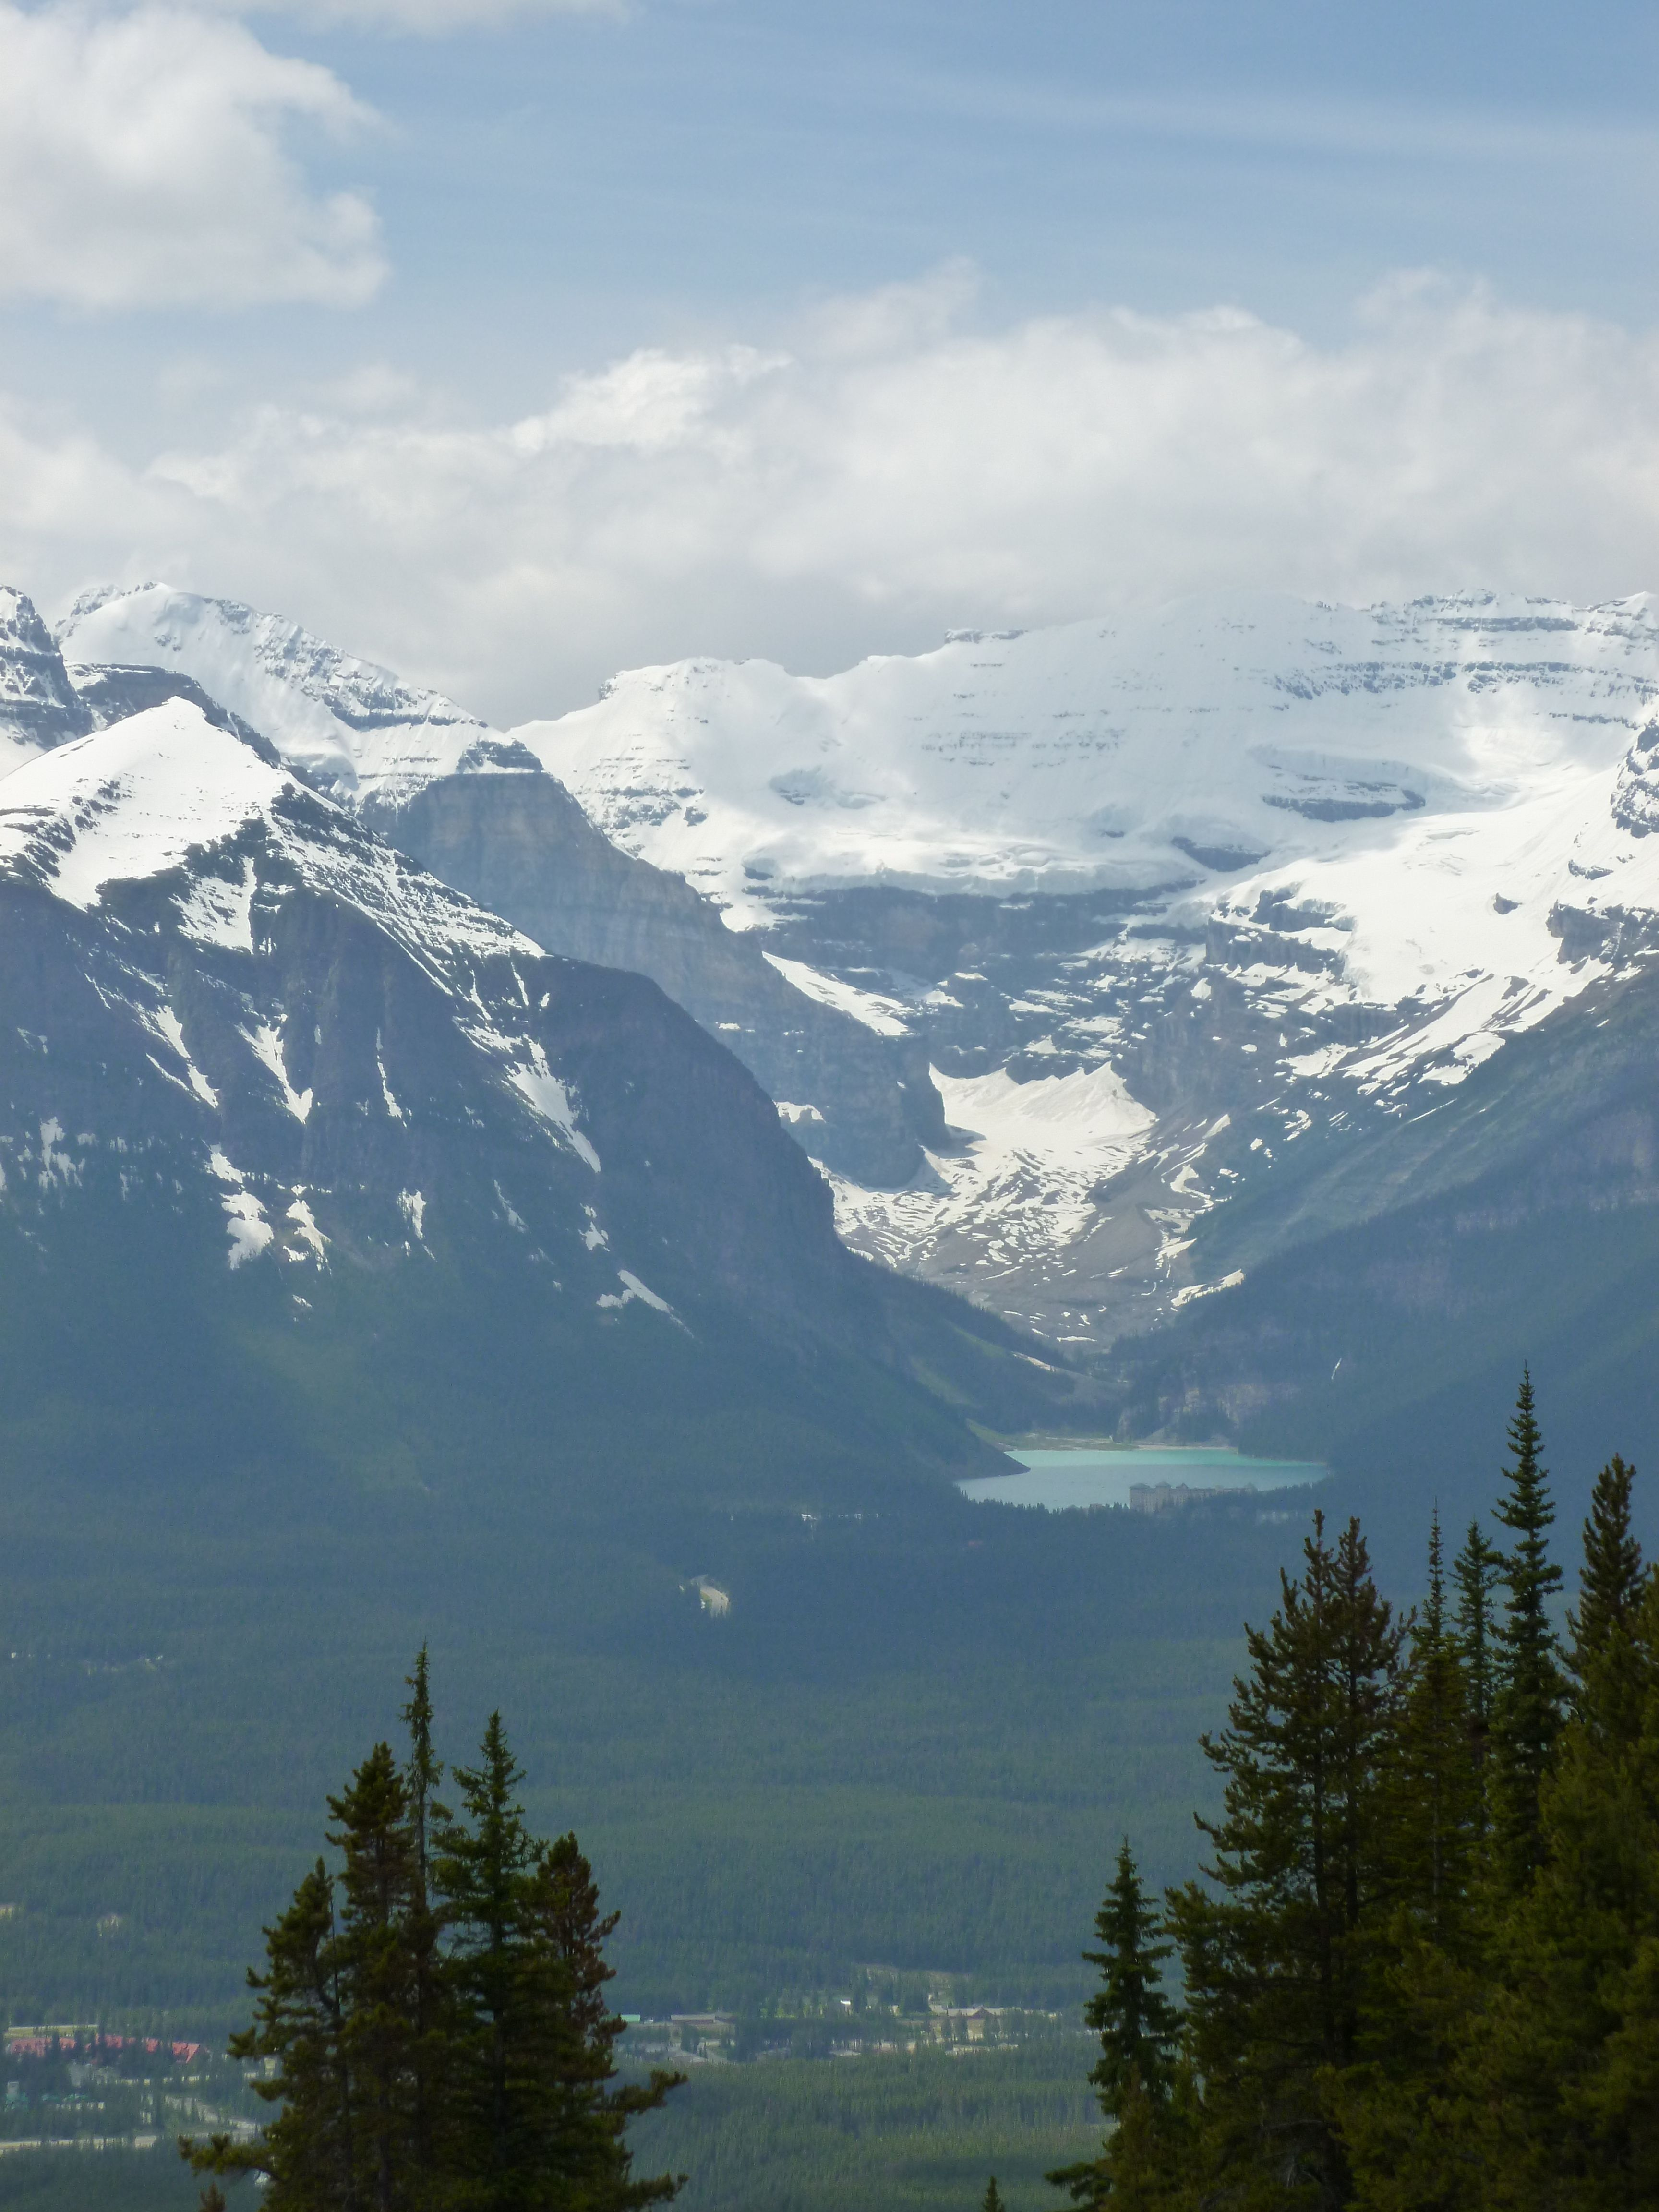 Lake Louise Canada from atop Mt. Whitehorn3